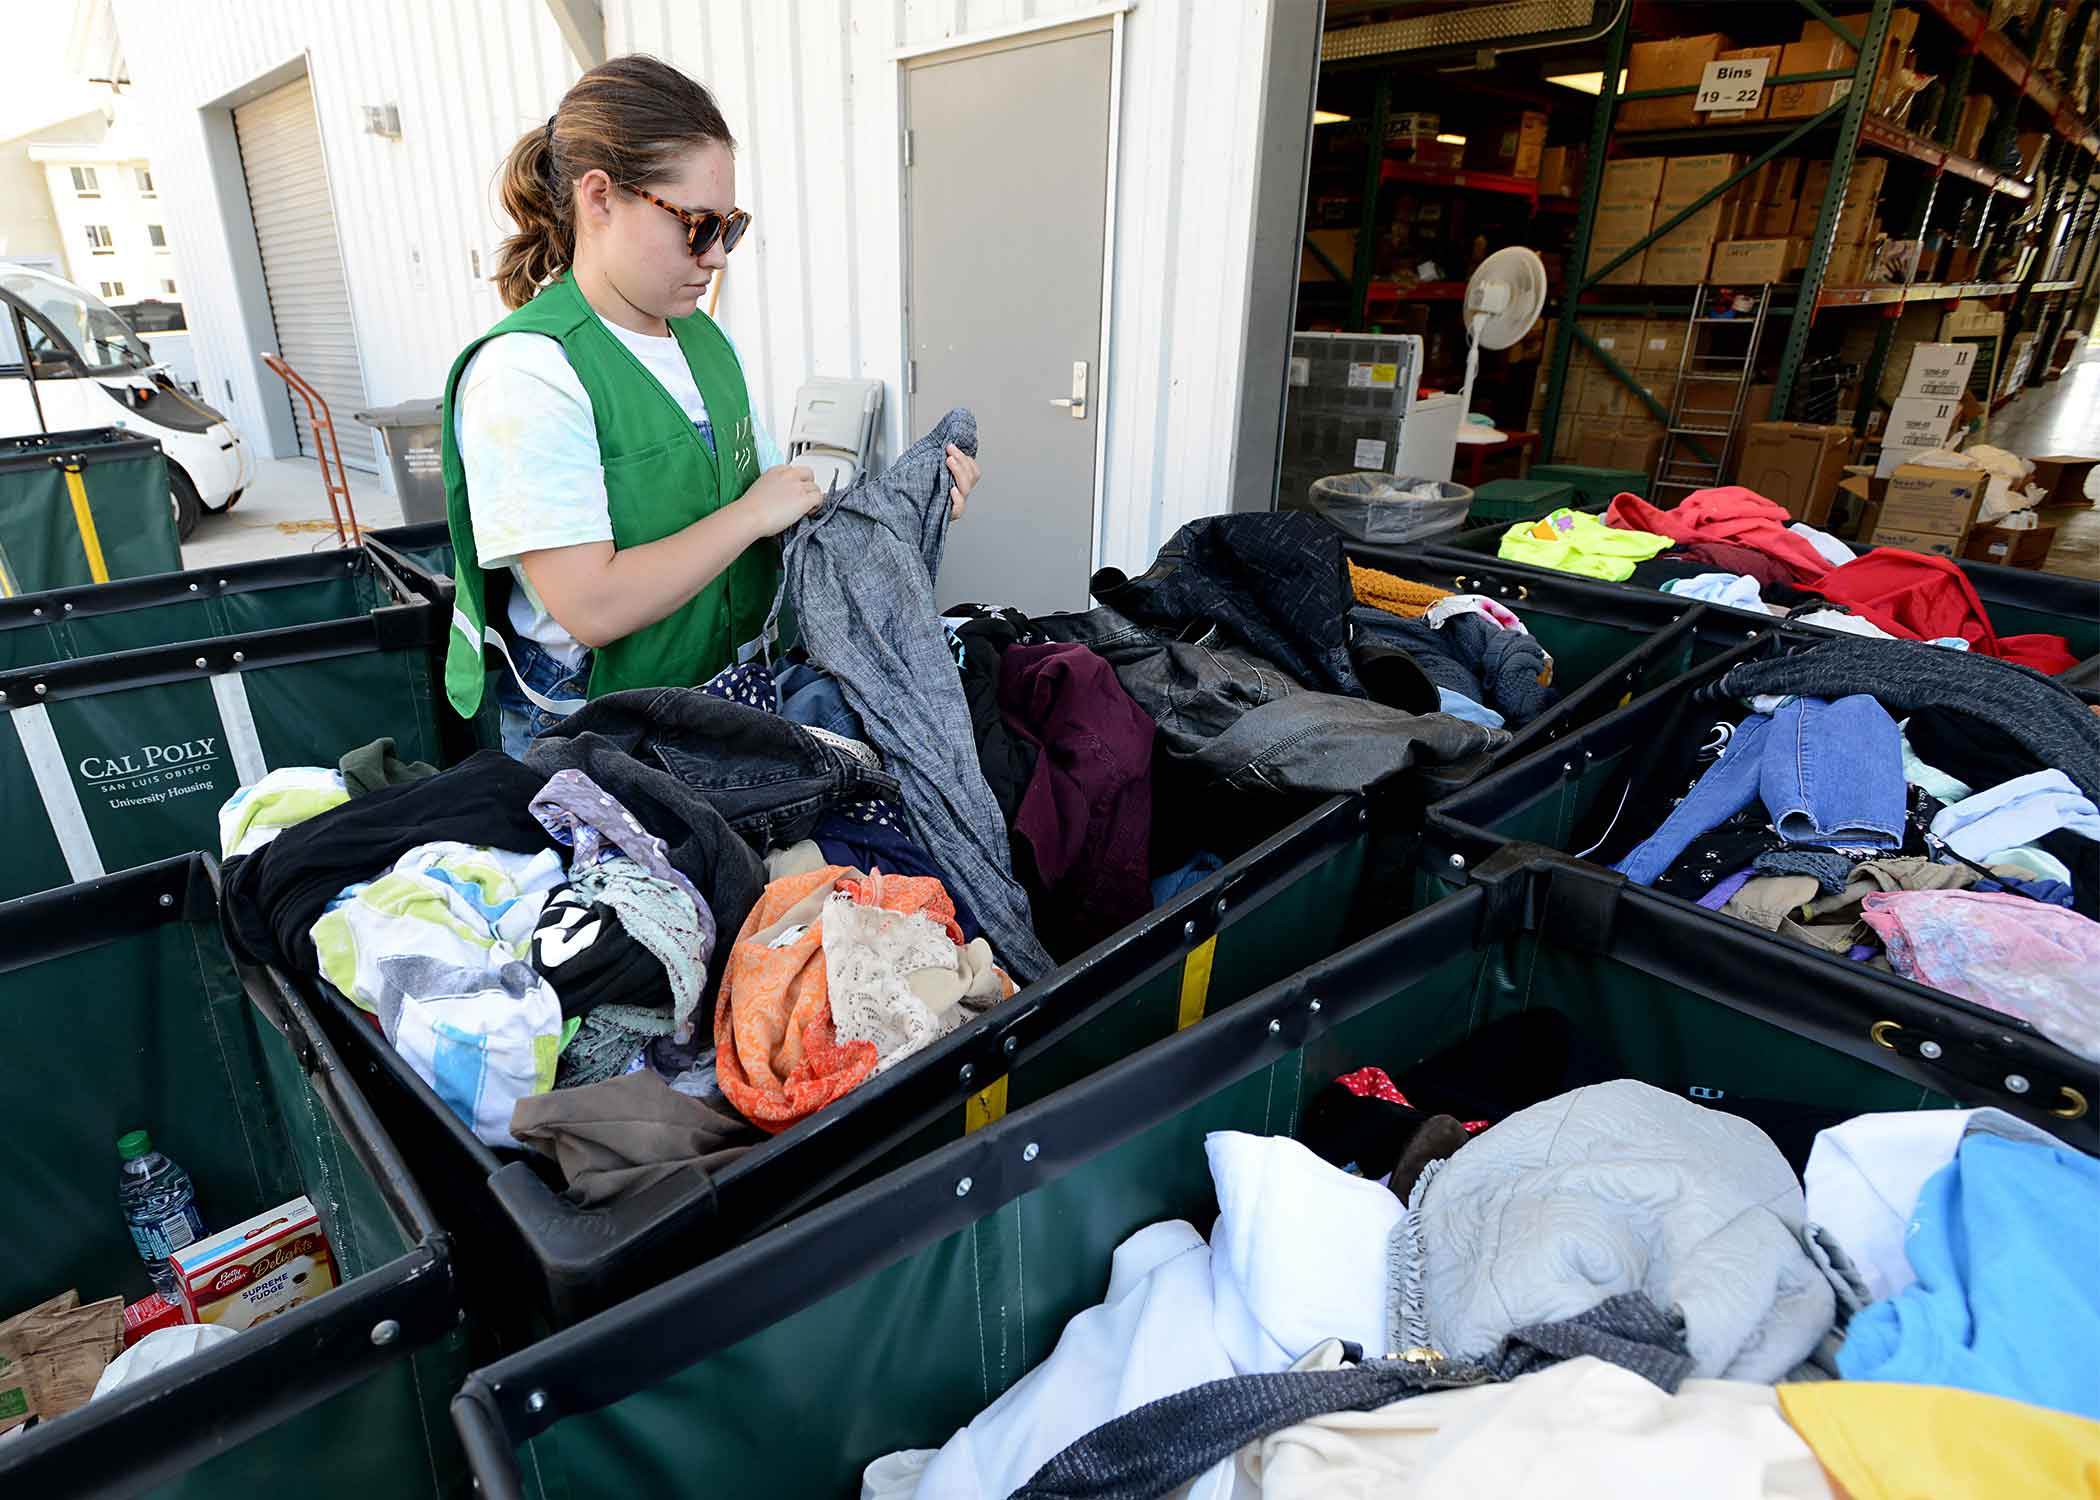 Amanda Smith, a communication studies major from San Diego, helps sort clothes donated by Cal Poly students who lived in campus student housing.